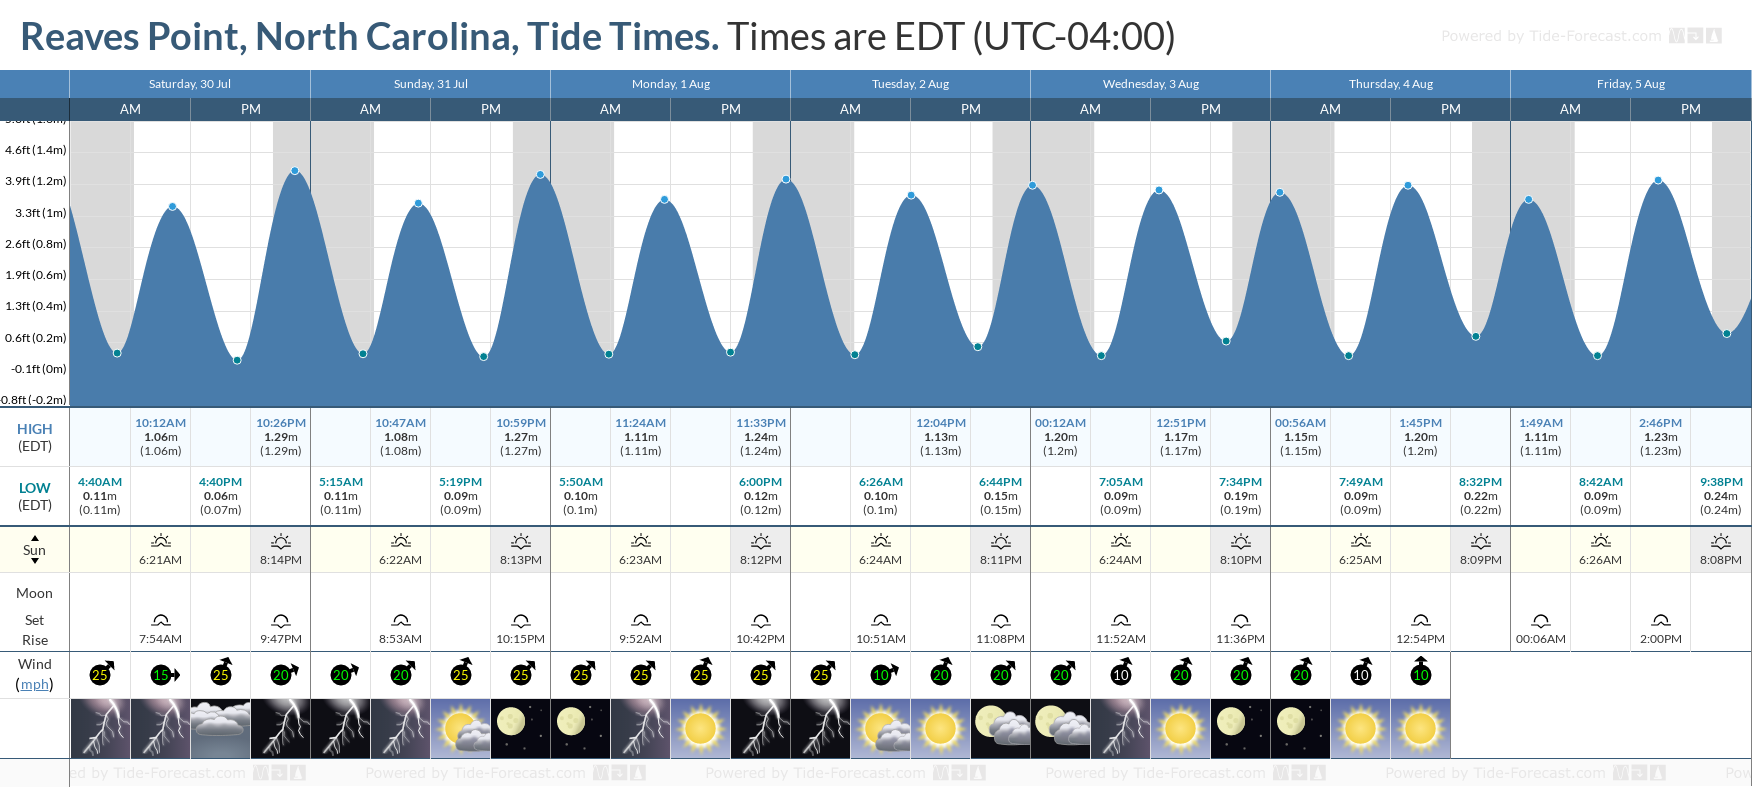 Reaves Point, North Carolina Tide Chart including high and low tide tide times for the next 7 days